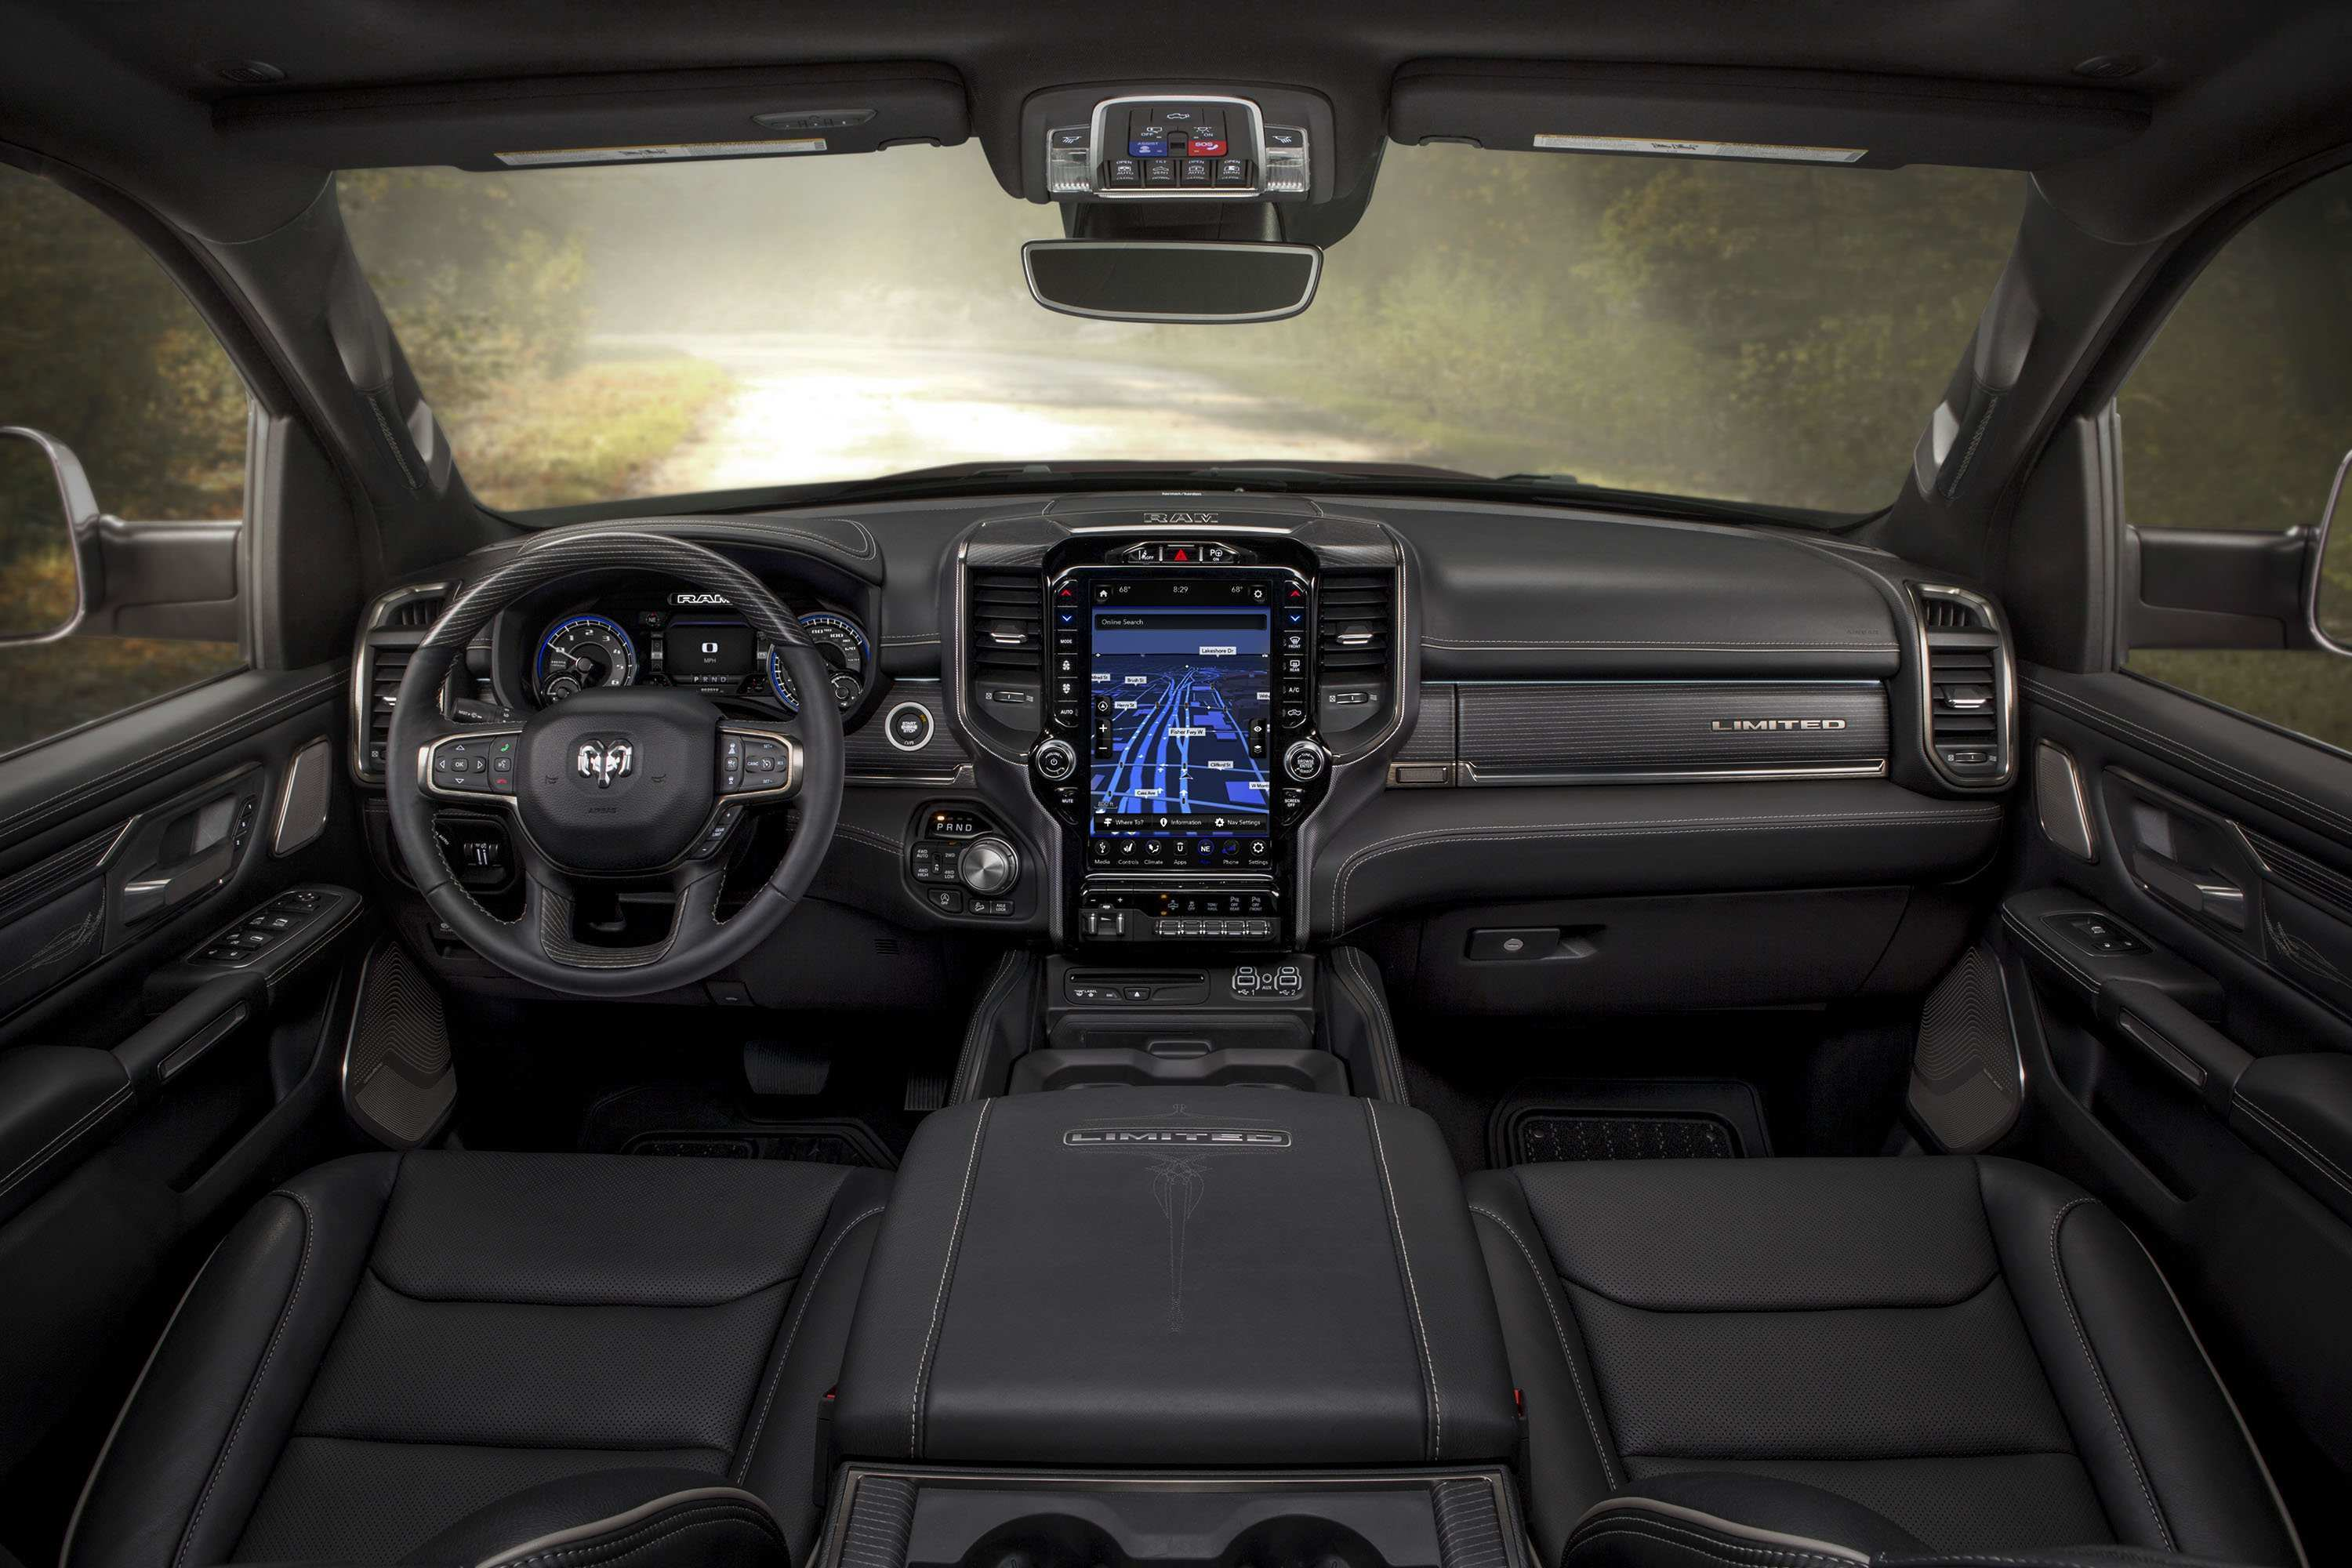 93 Great 2020 Dodge Ram Limited Specs and Review with 2020 Dodge Ram Limited